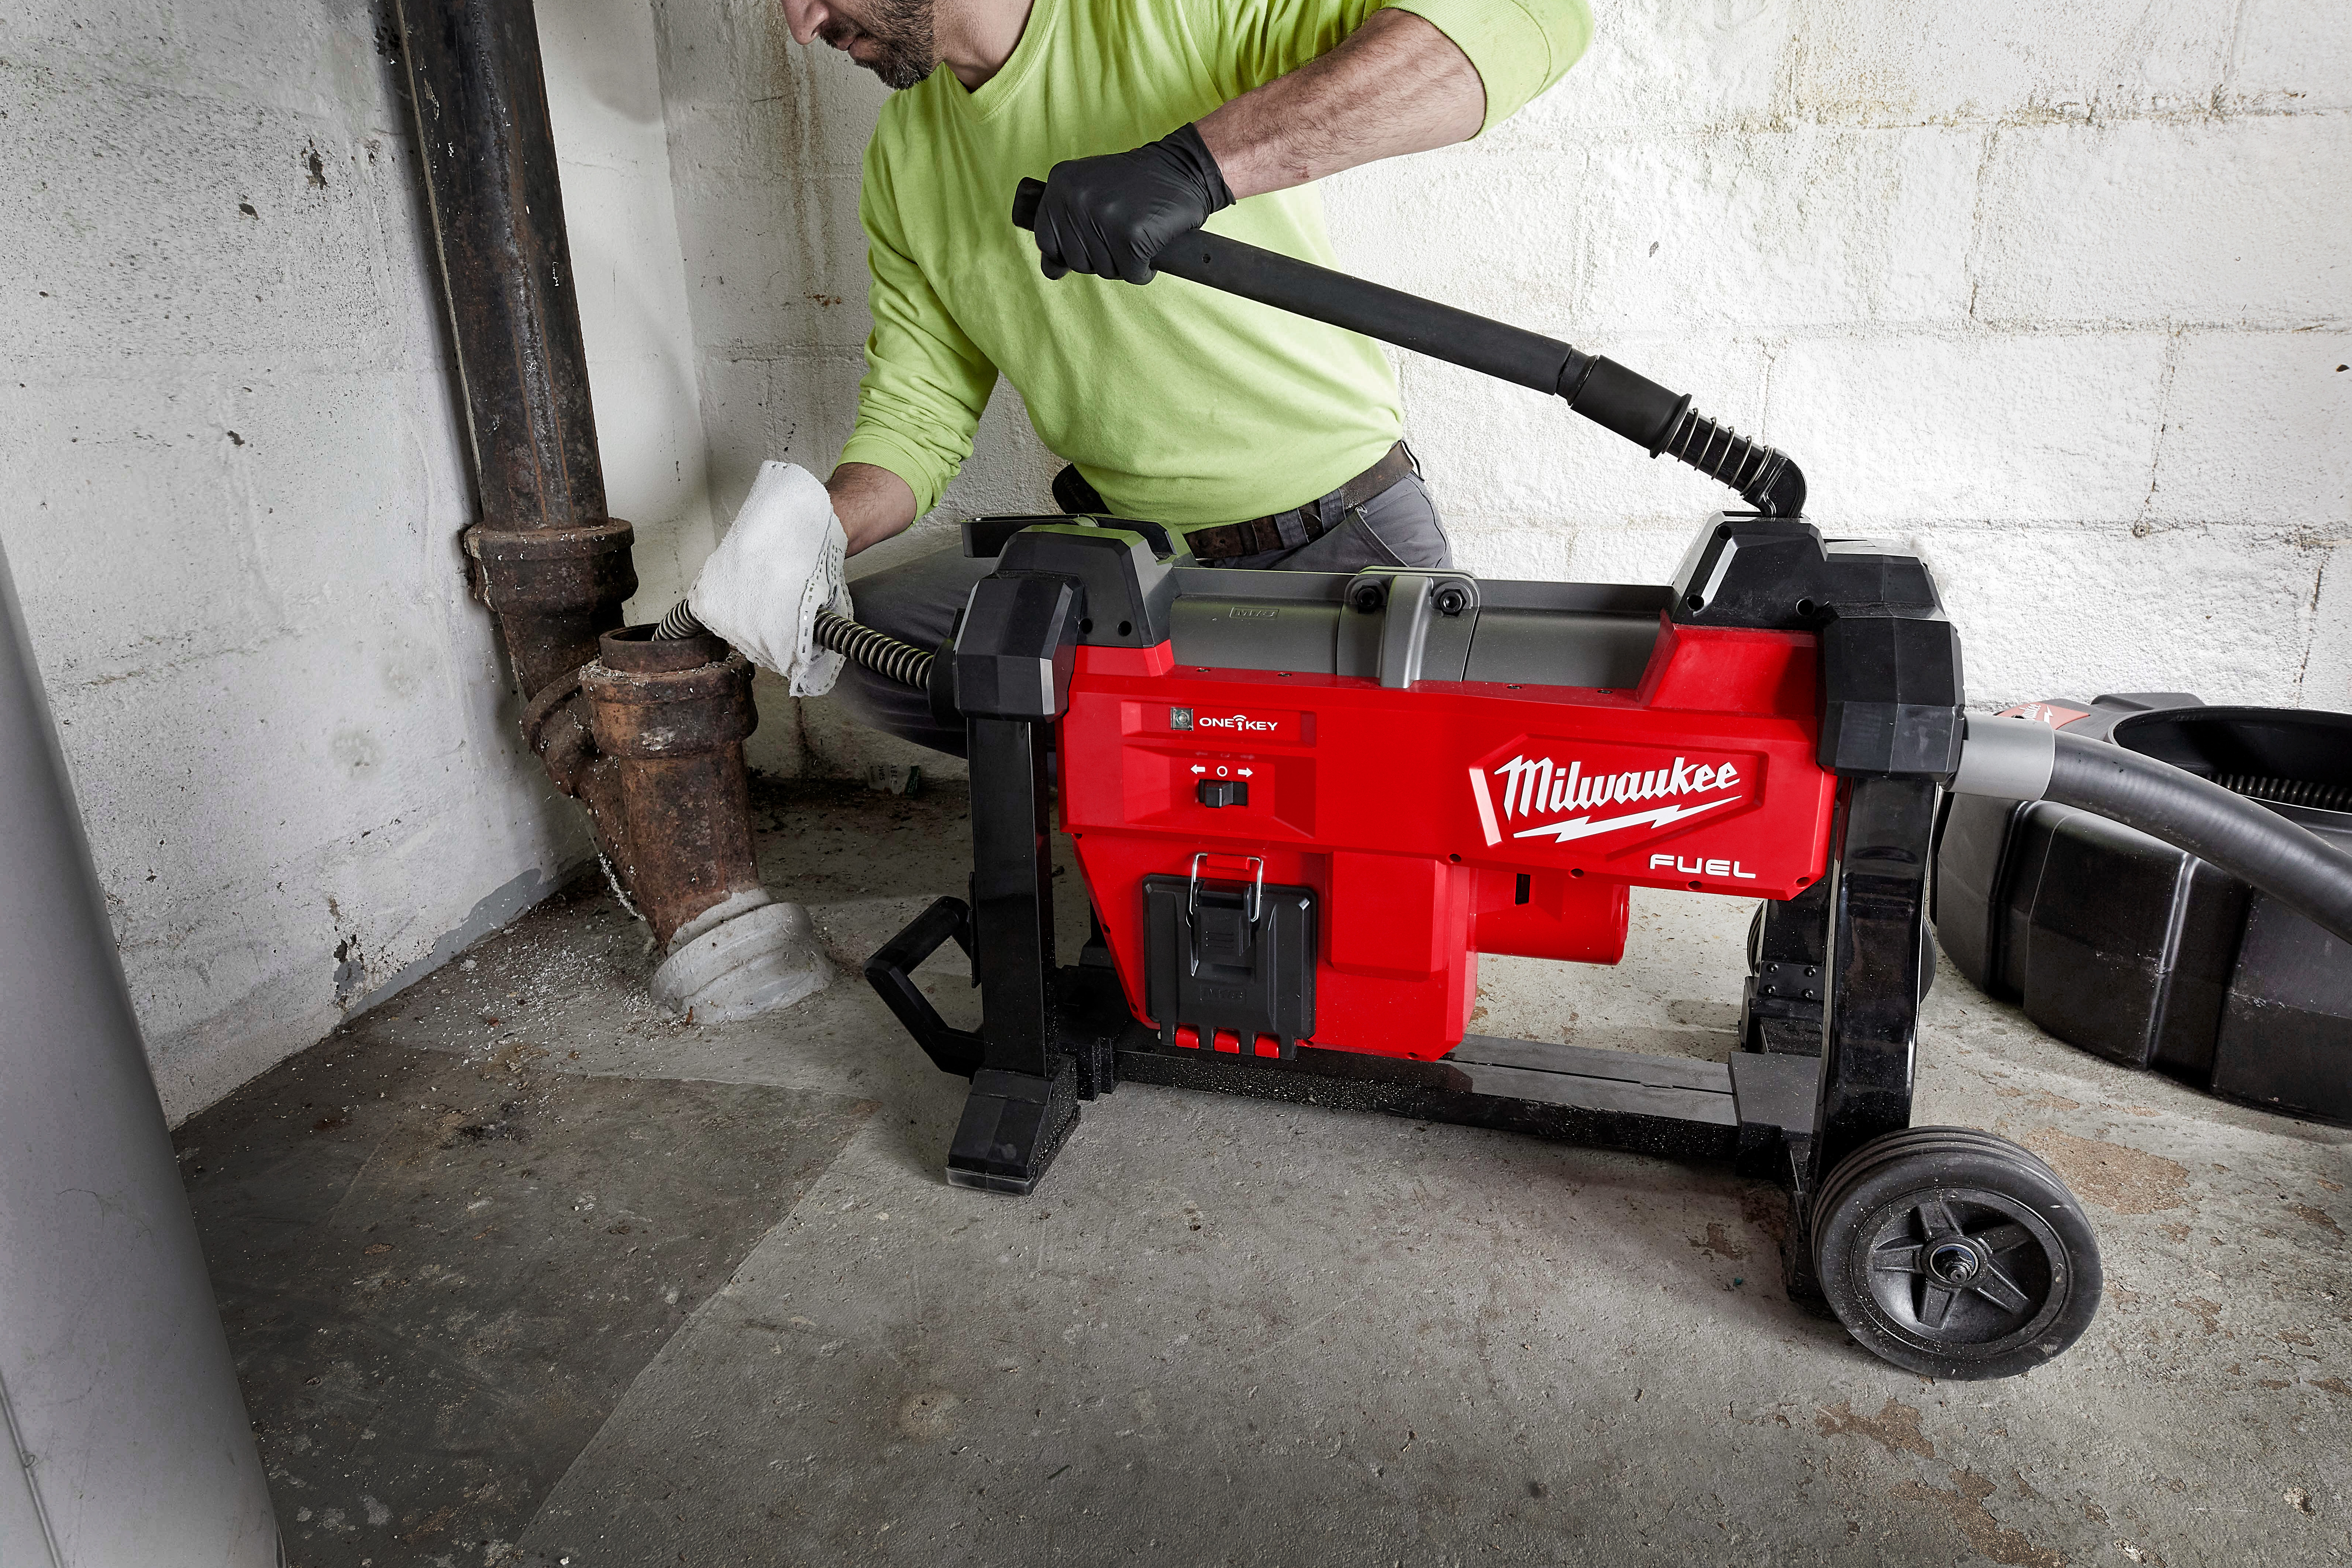 A drain cleaning professional utilizes a Milwaukee sectional drain cleaning machine